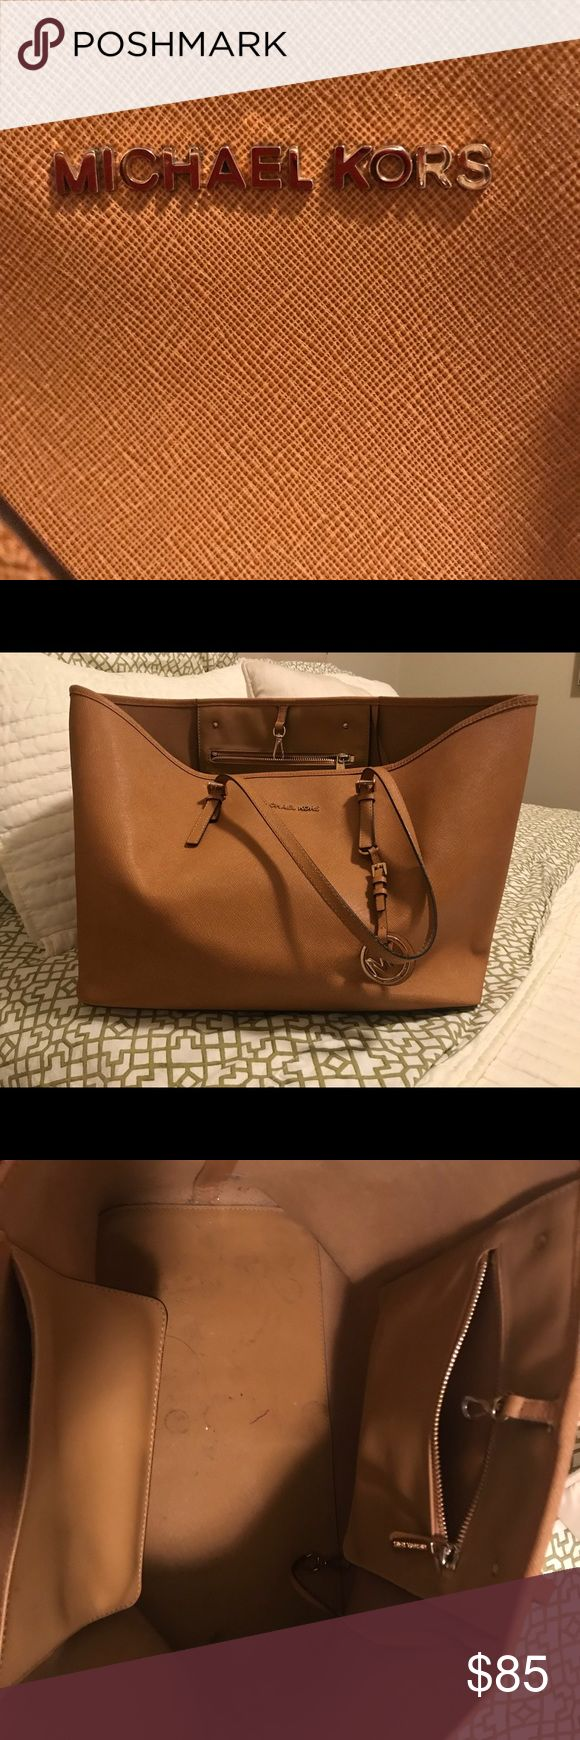 Michael Kors Purse Tan leather- no scratches or stains, just light ware and tear on the inside (photographed). Light ware and tear on shoulder straps (photographed). Other than that it is in supreme condition and stored in the dust bag when not in use! KORS Michael Kors Bags Shoulder Bags